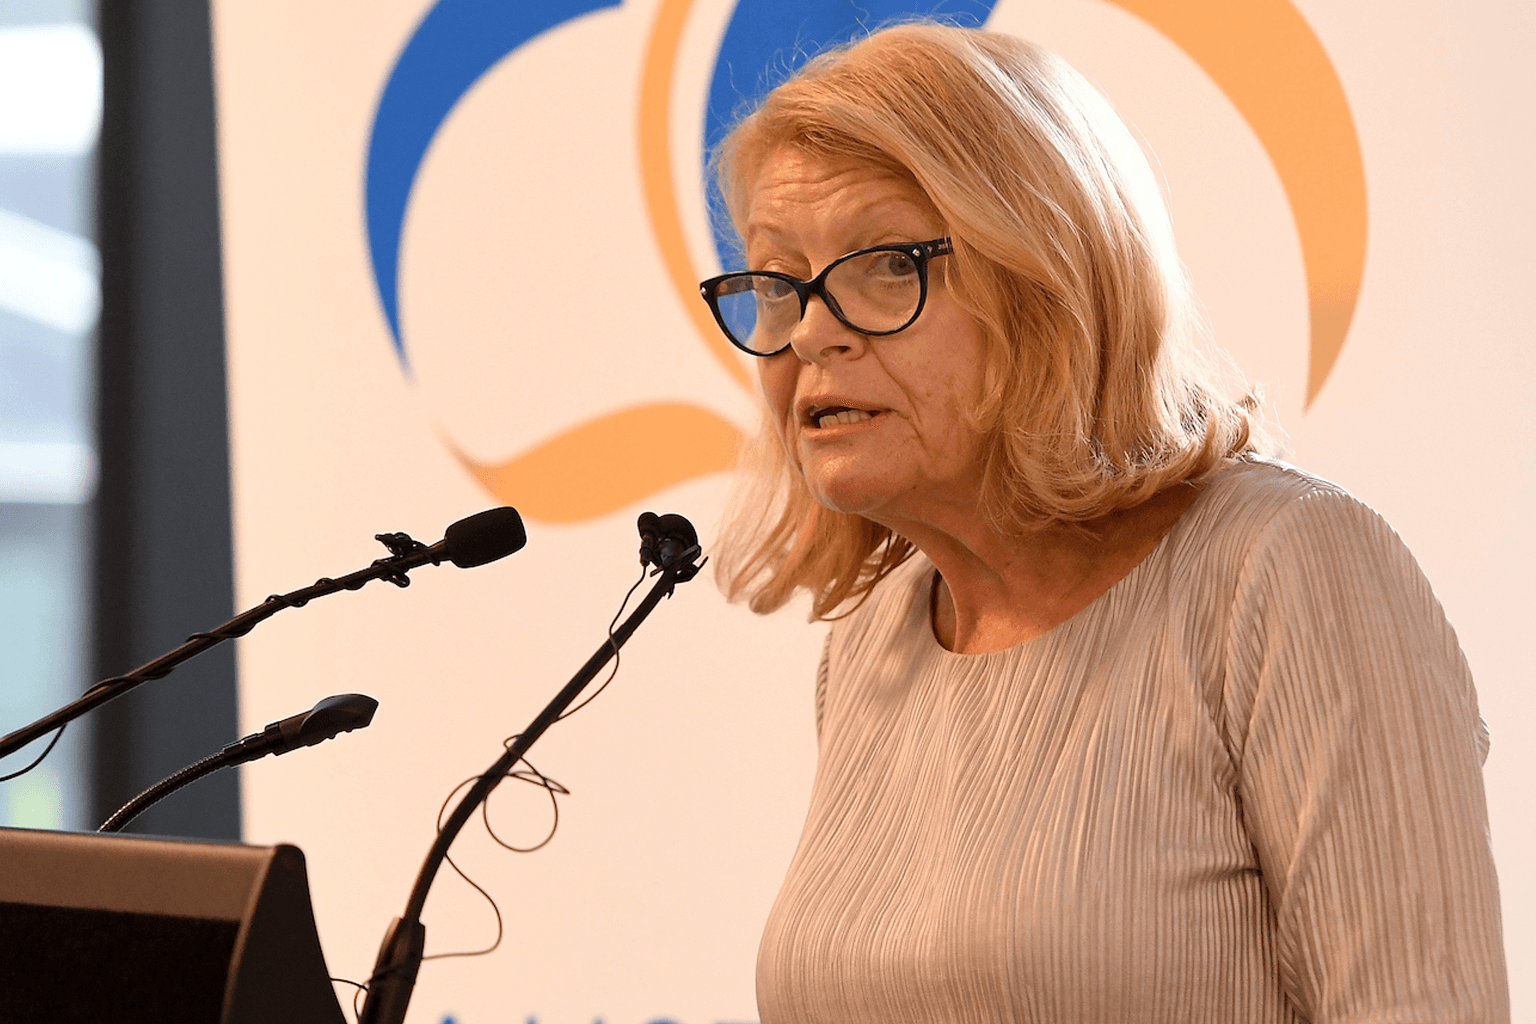 Lynne Anderson stands at a lectern speaking into microphones